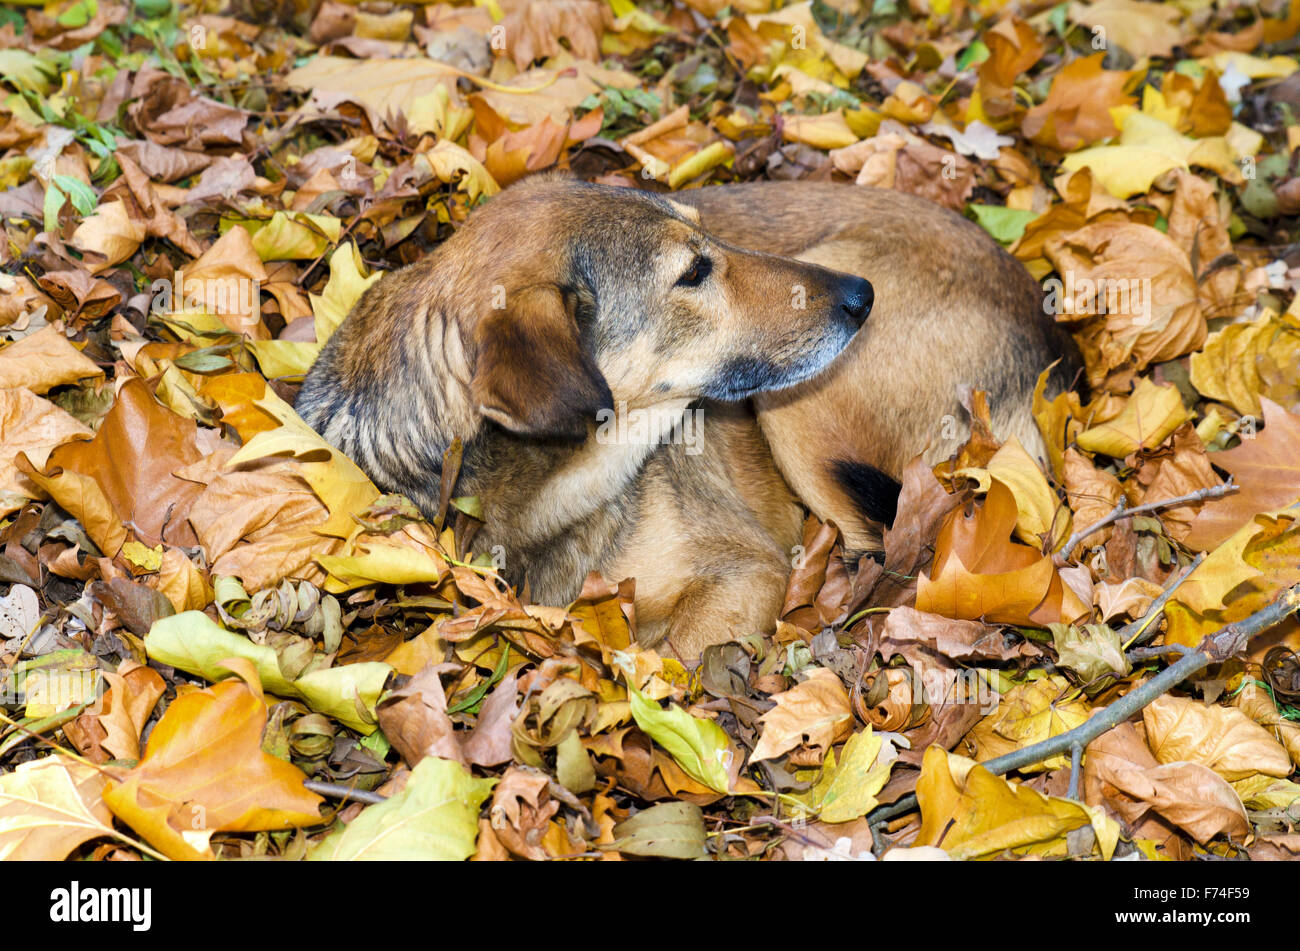 Homeless dog nestles in the autumn leaves in a park - Stock Image